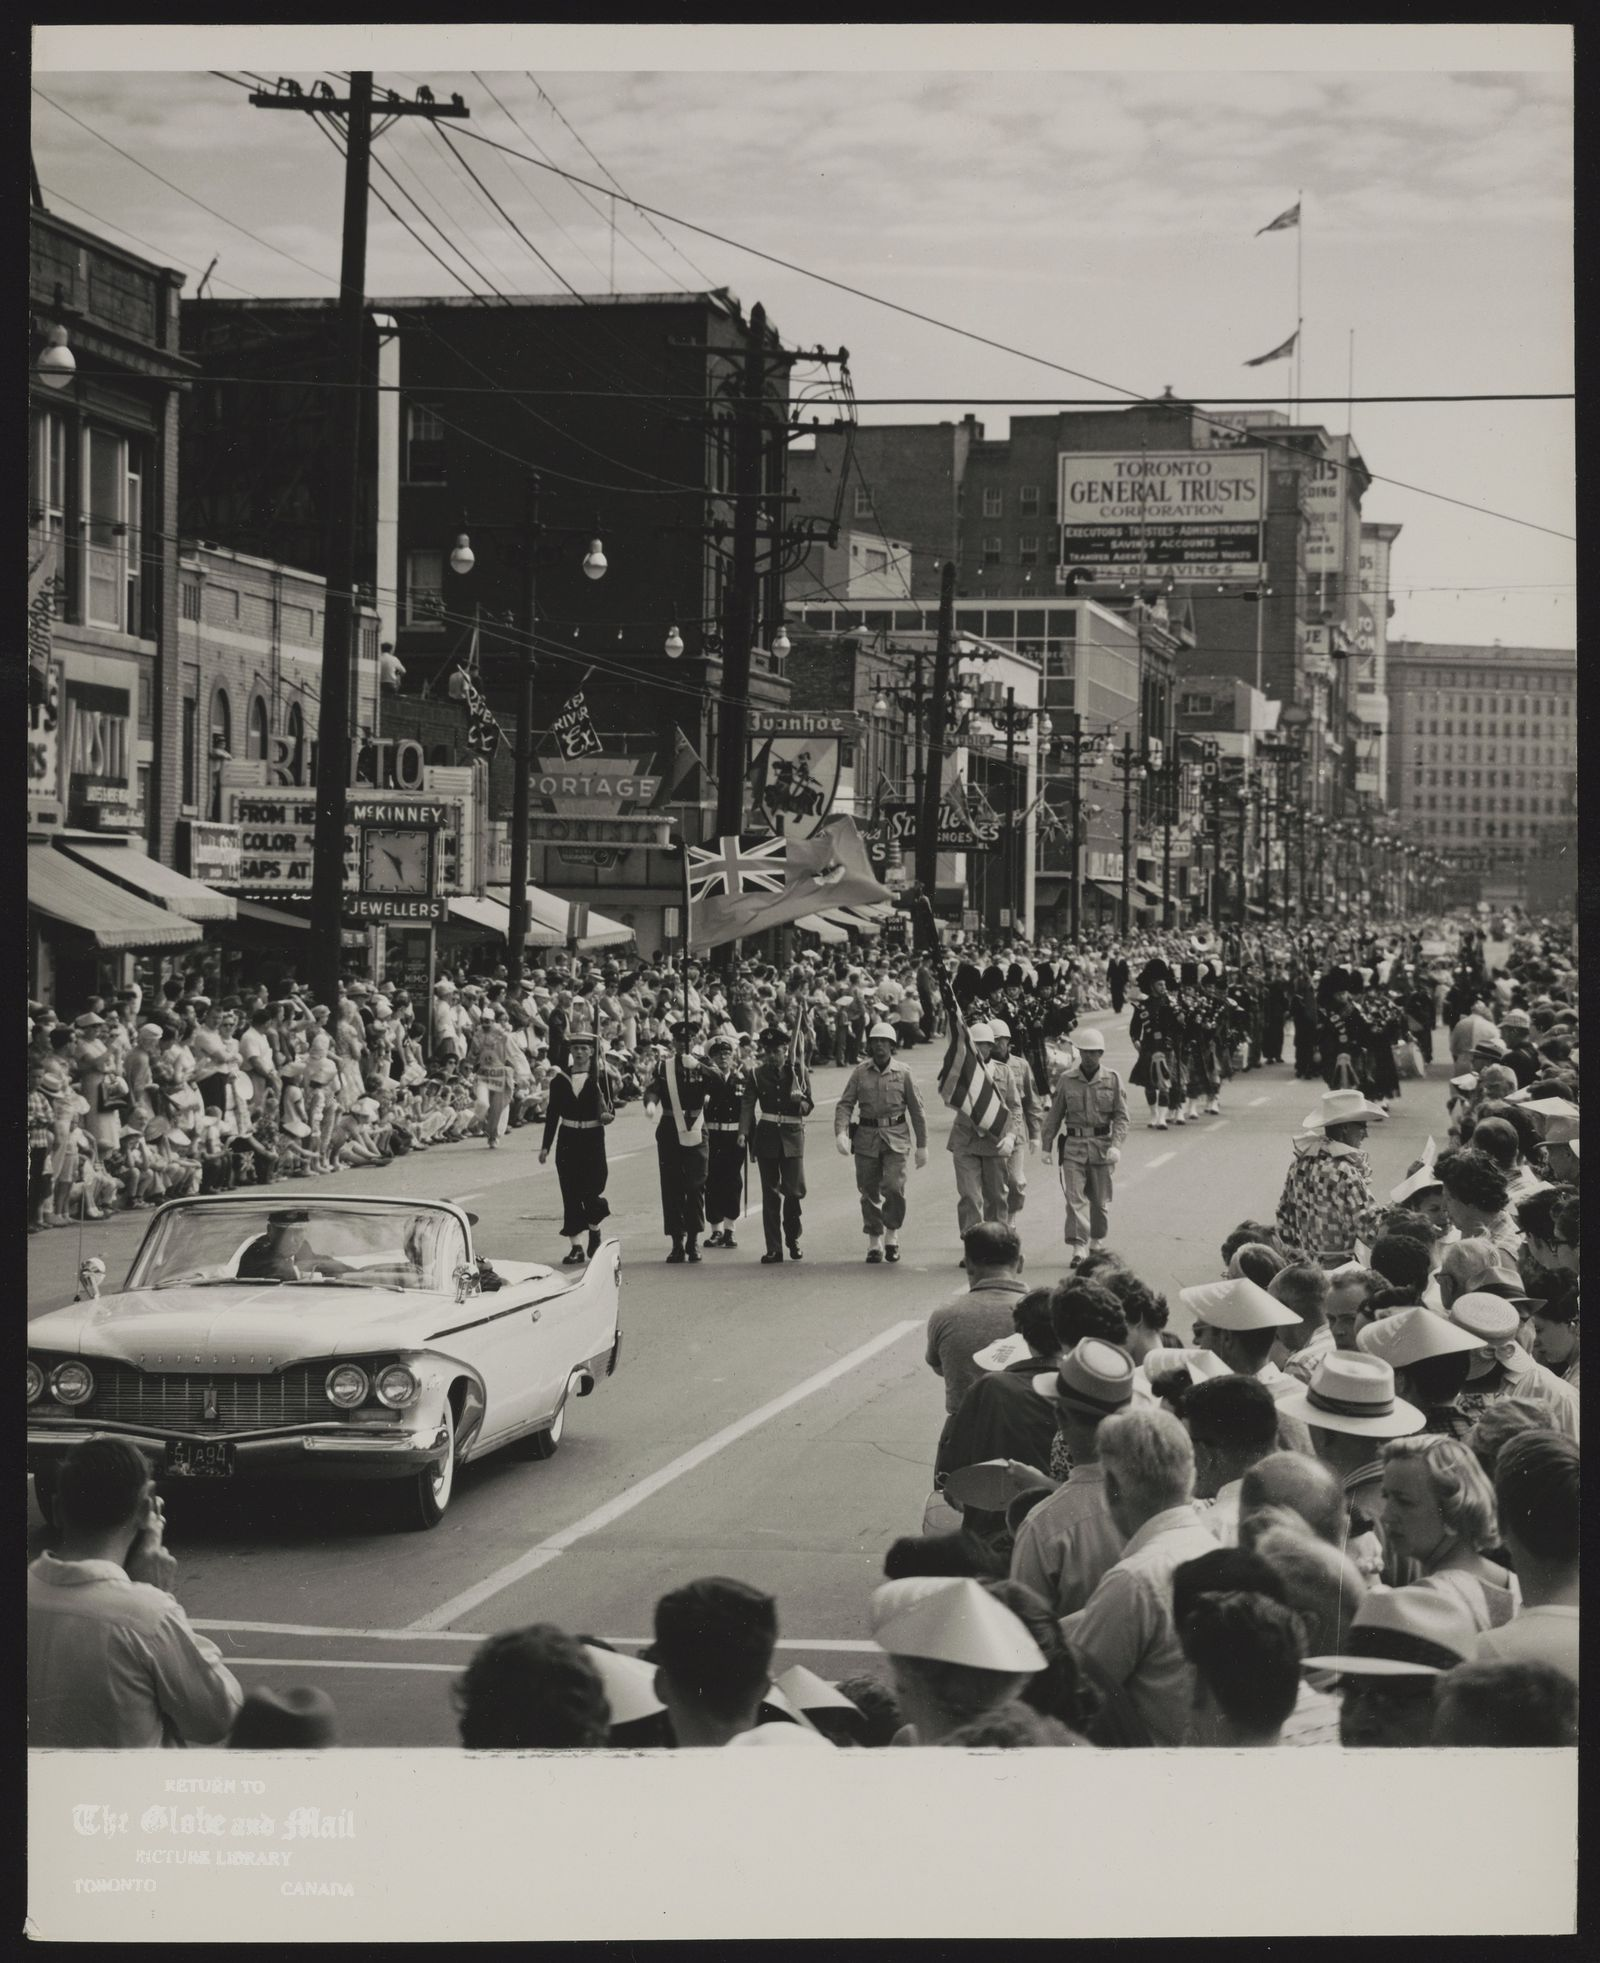 DOMINION DAY in Winnipeg, [July 1, 1961] Dominion Day is many things to many people. To the old-timer it is history; to the child, noise and fun; to the serviceman, marching...To Winnipeggers it is all these things and more -- a time when everyone joins to mark Canada's birthday in his own special way. All the ways and all the peoples add up to just one word -- Canadian.